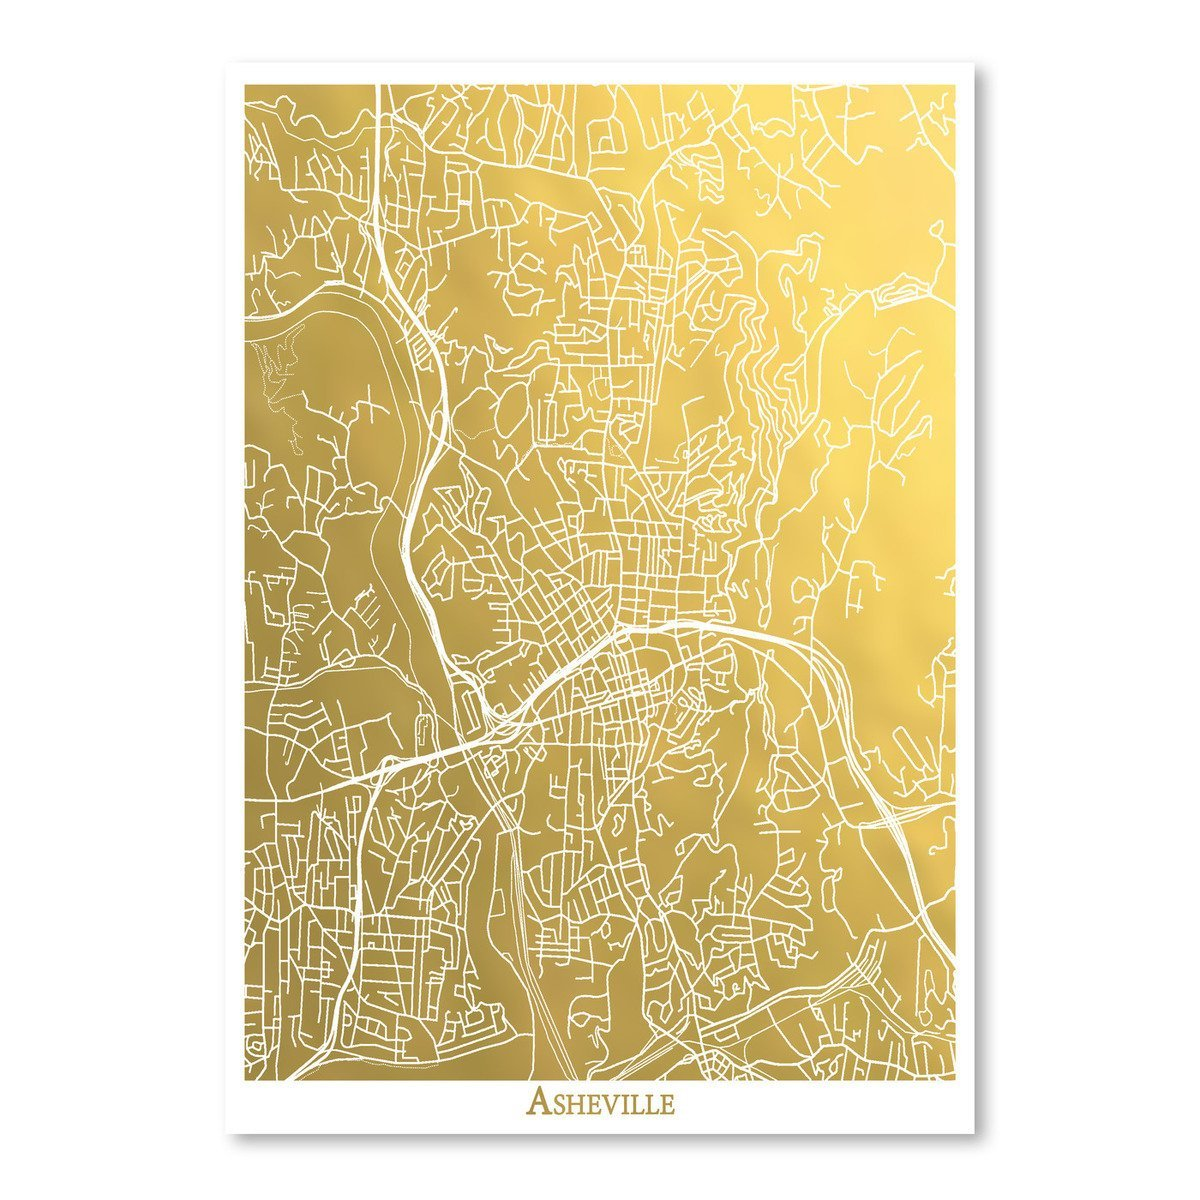 Asheville by The Gold Foil Map Company Art Print - Art Print - Americanflat